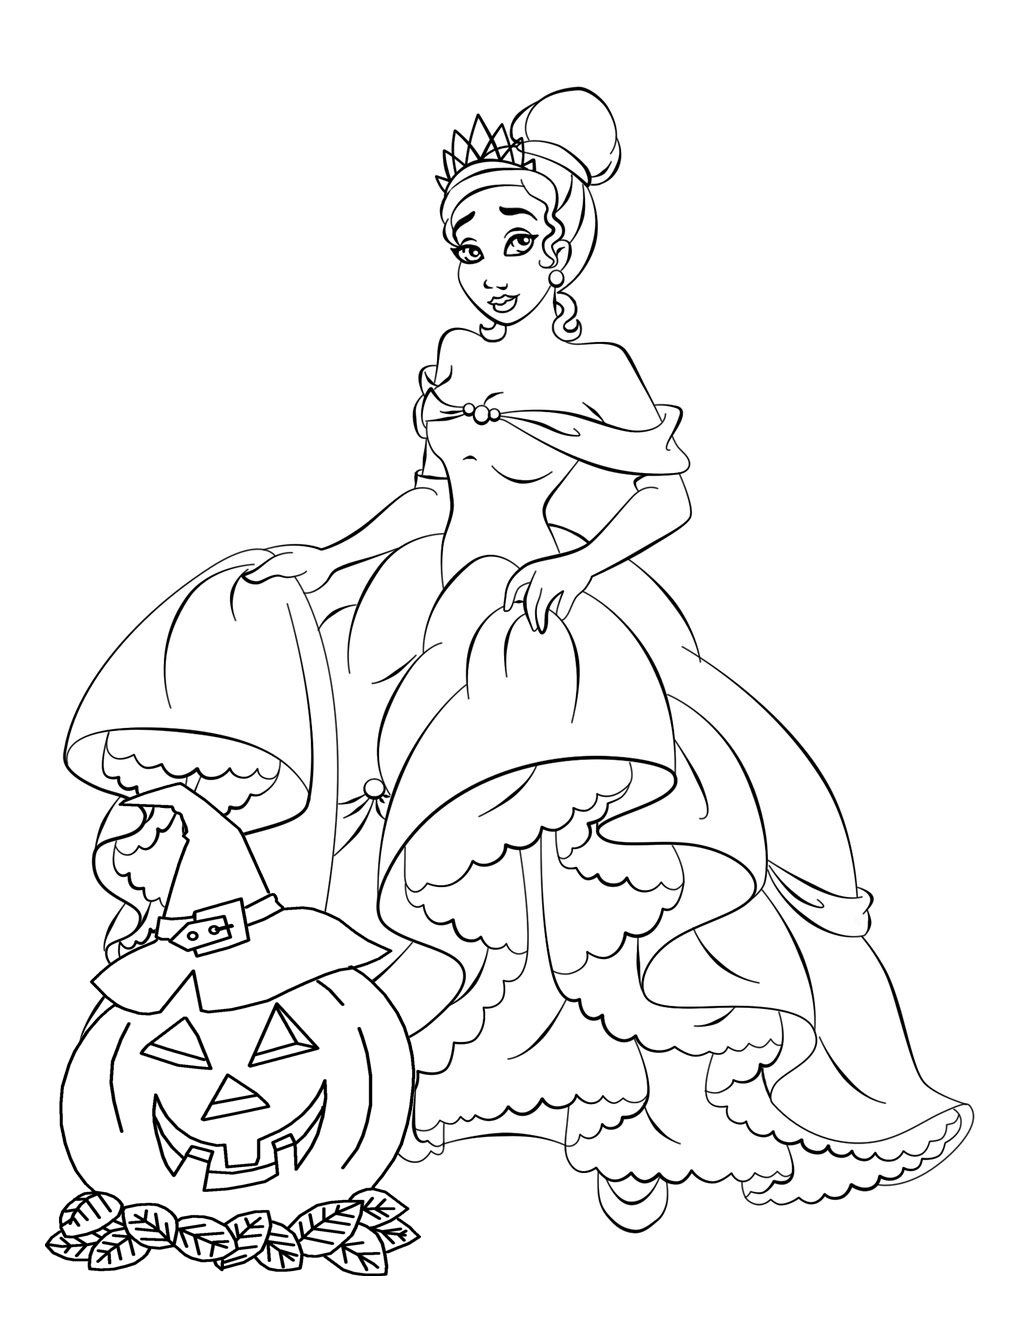 Free coloring disney princess pages - It Looks Like You Re Interested In Our Coloring Online Disney We Also Offer Many Different Princess Coloring Pages On Our Site So Check Us Out Now And Get